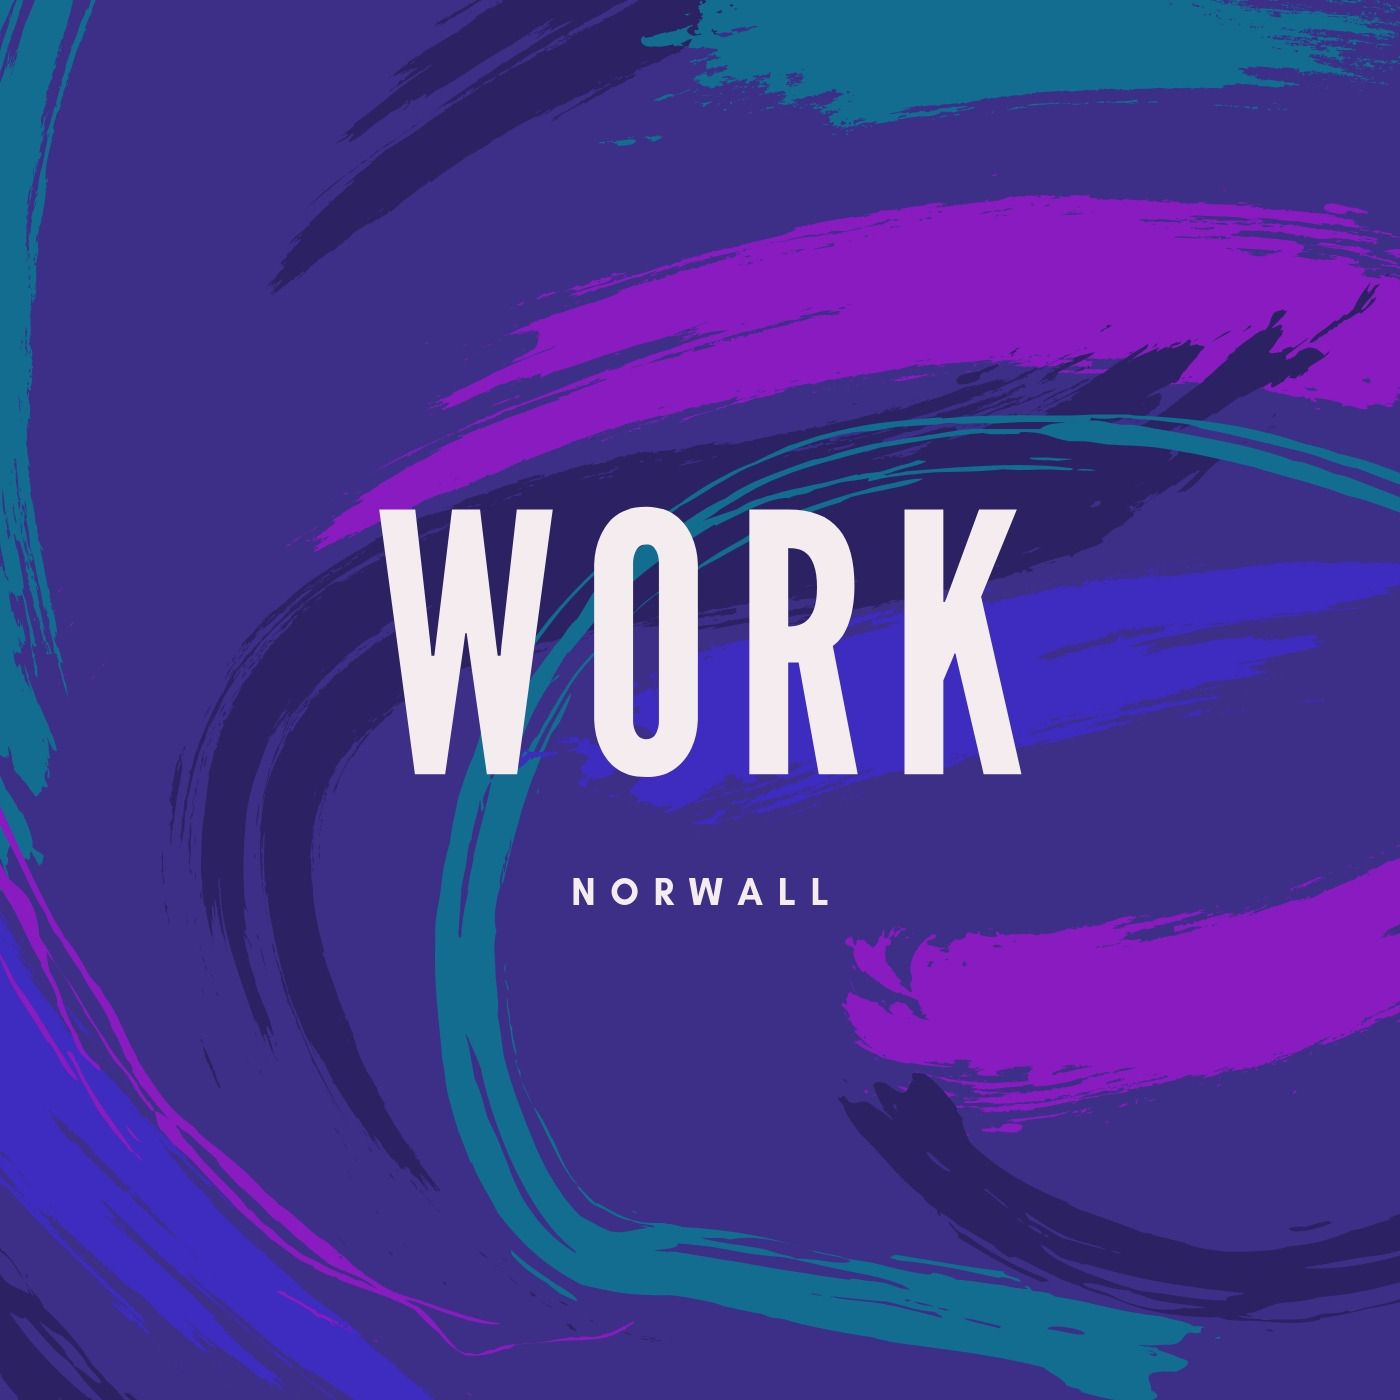 Listen To Work by Norwall for free on Audiomack. music